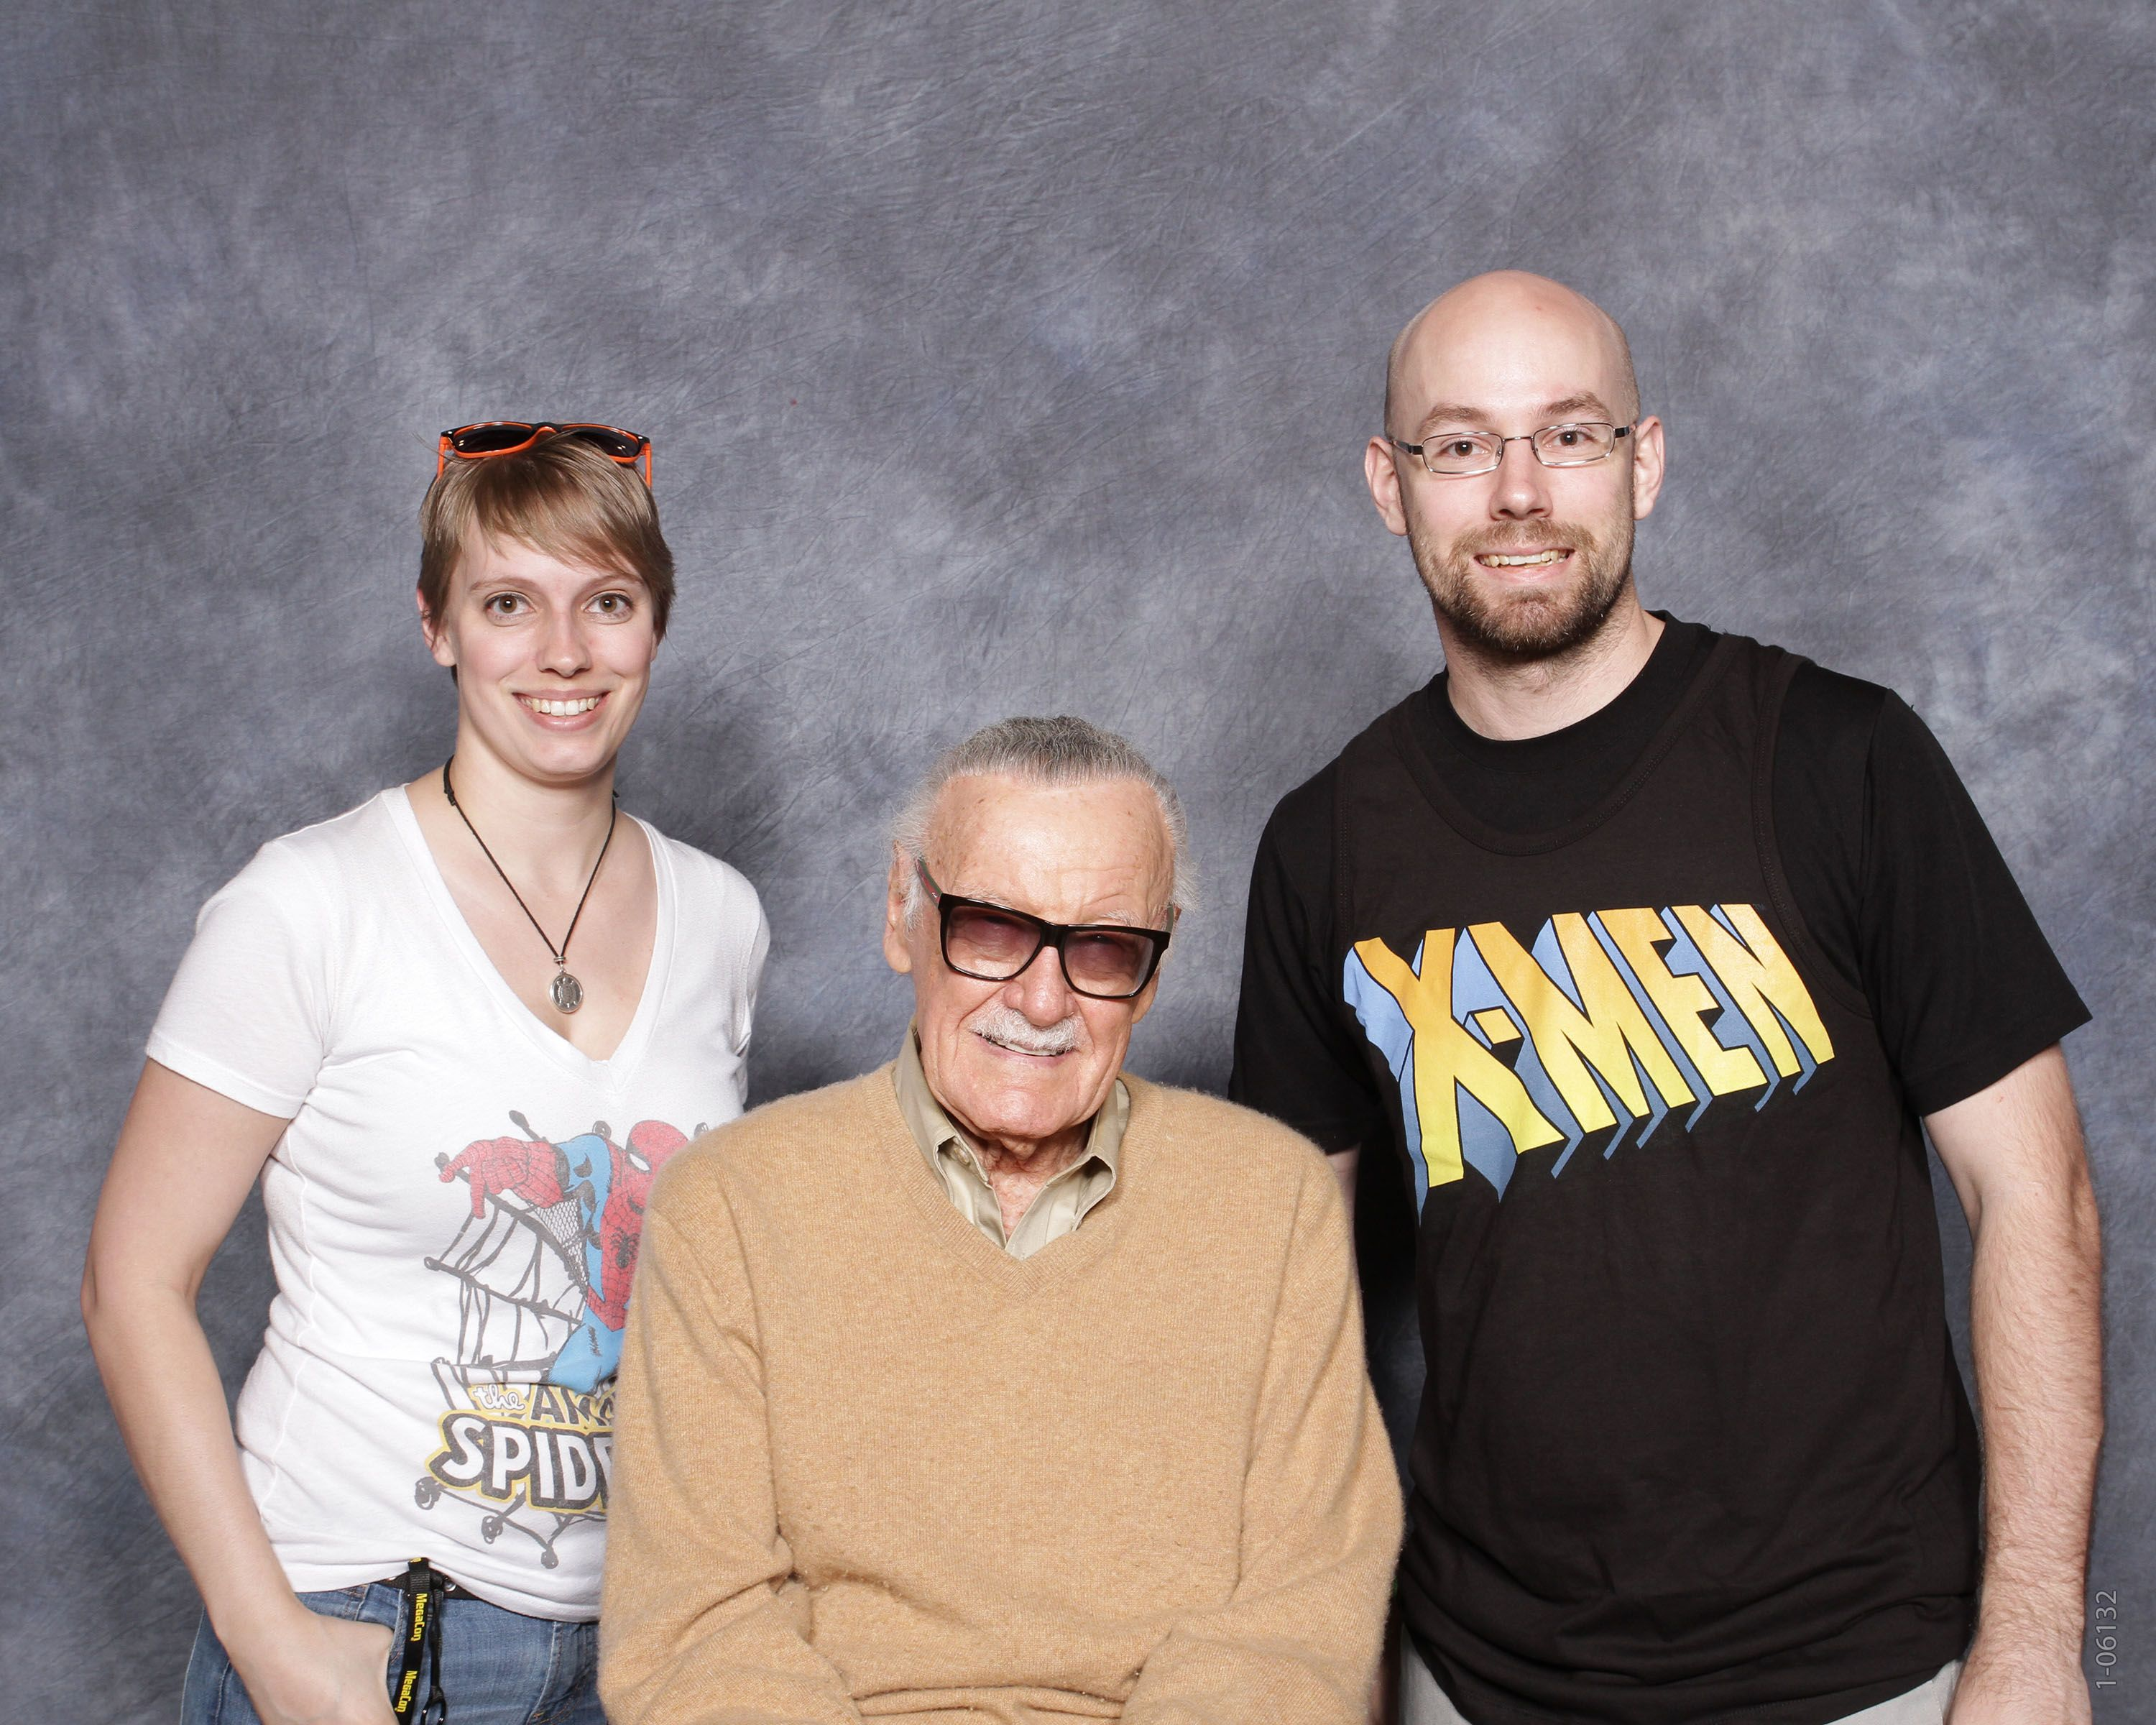 MegaCon 2015 - Me, my brother, and some random guy  Image: Celeb Photo Ops. Used with permission.